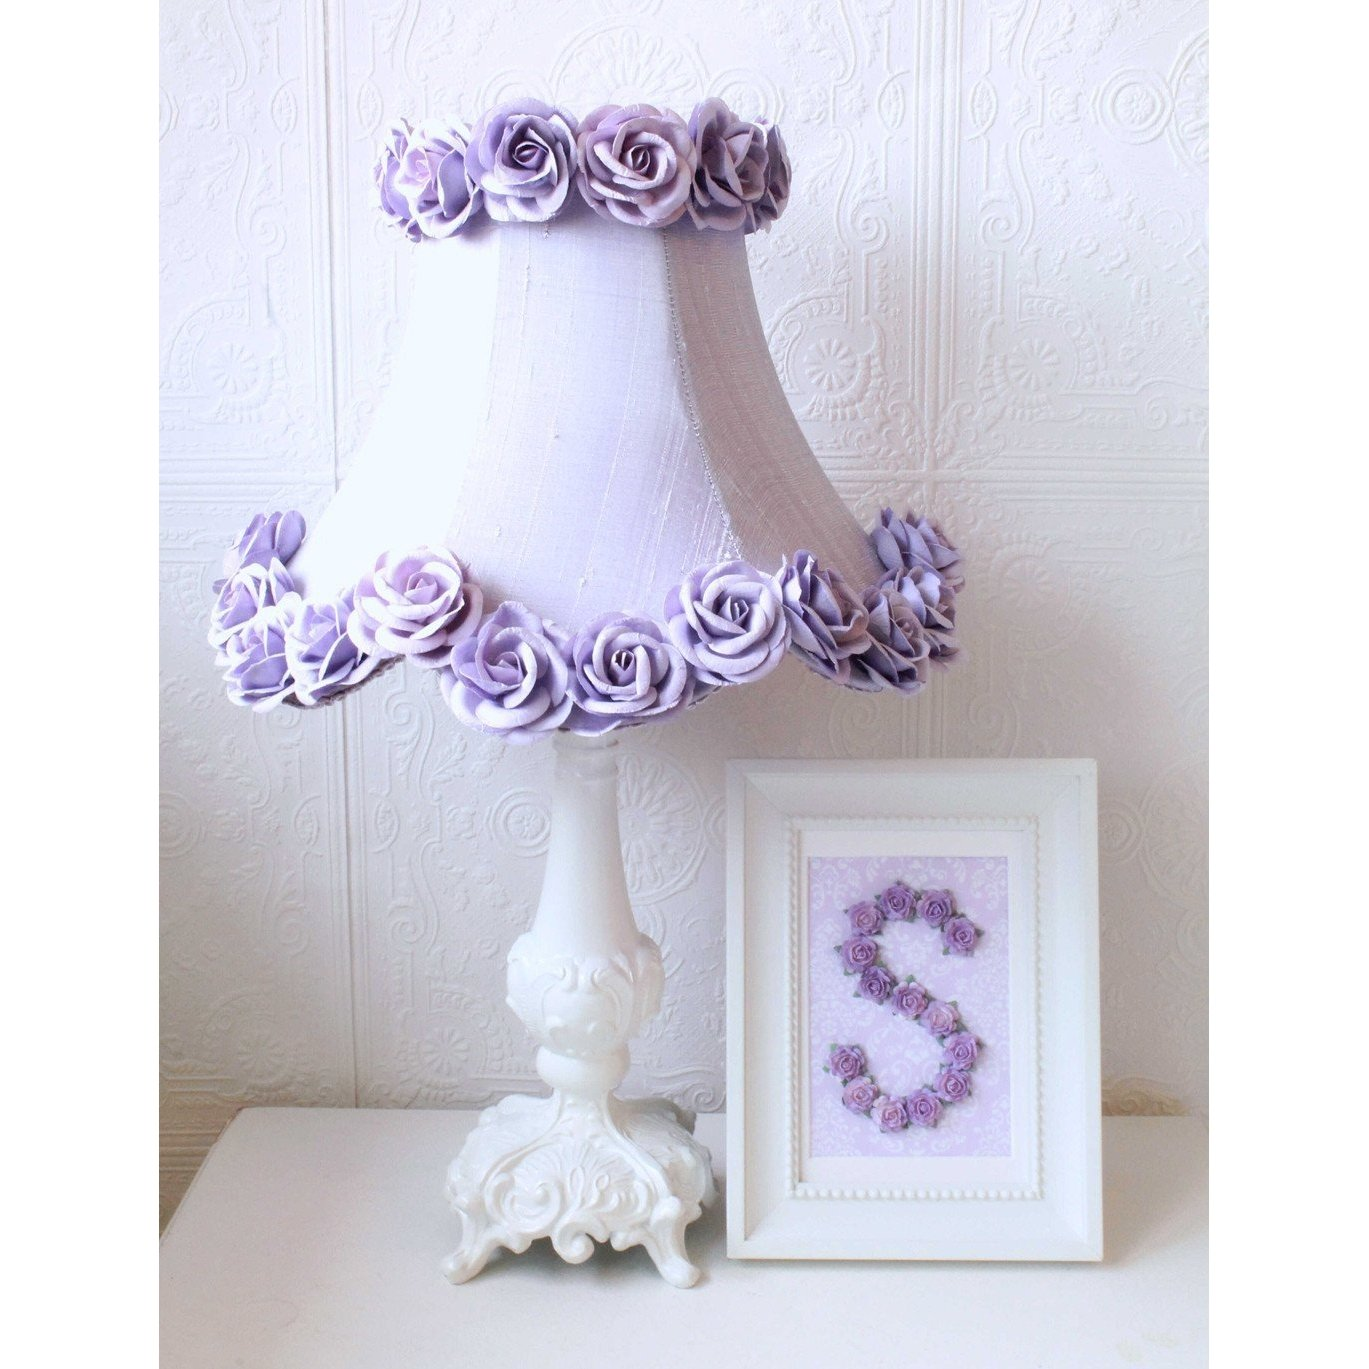 Lavender Dupioni Silk Lamp Shade with Roses-Lamp Shades-Default-Jack and Jill Boutique